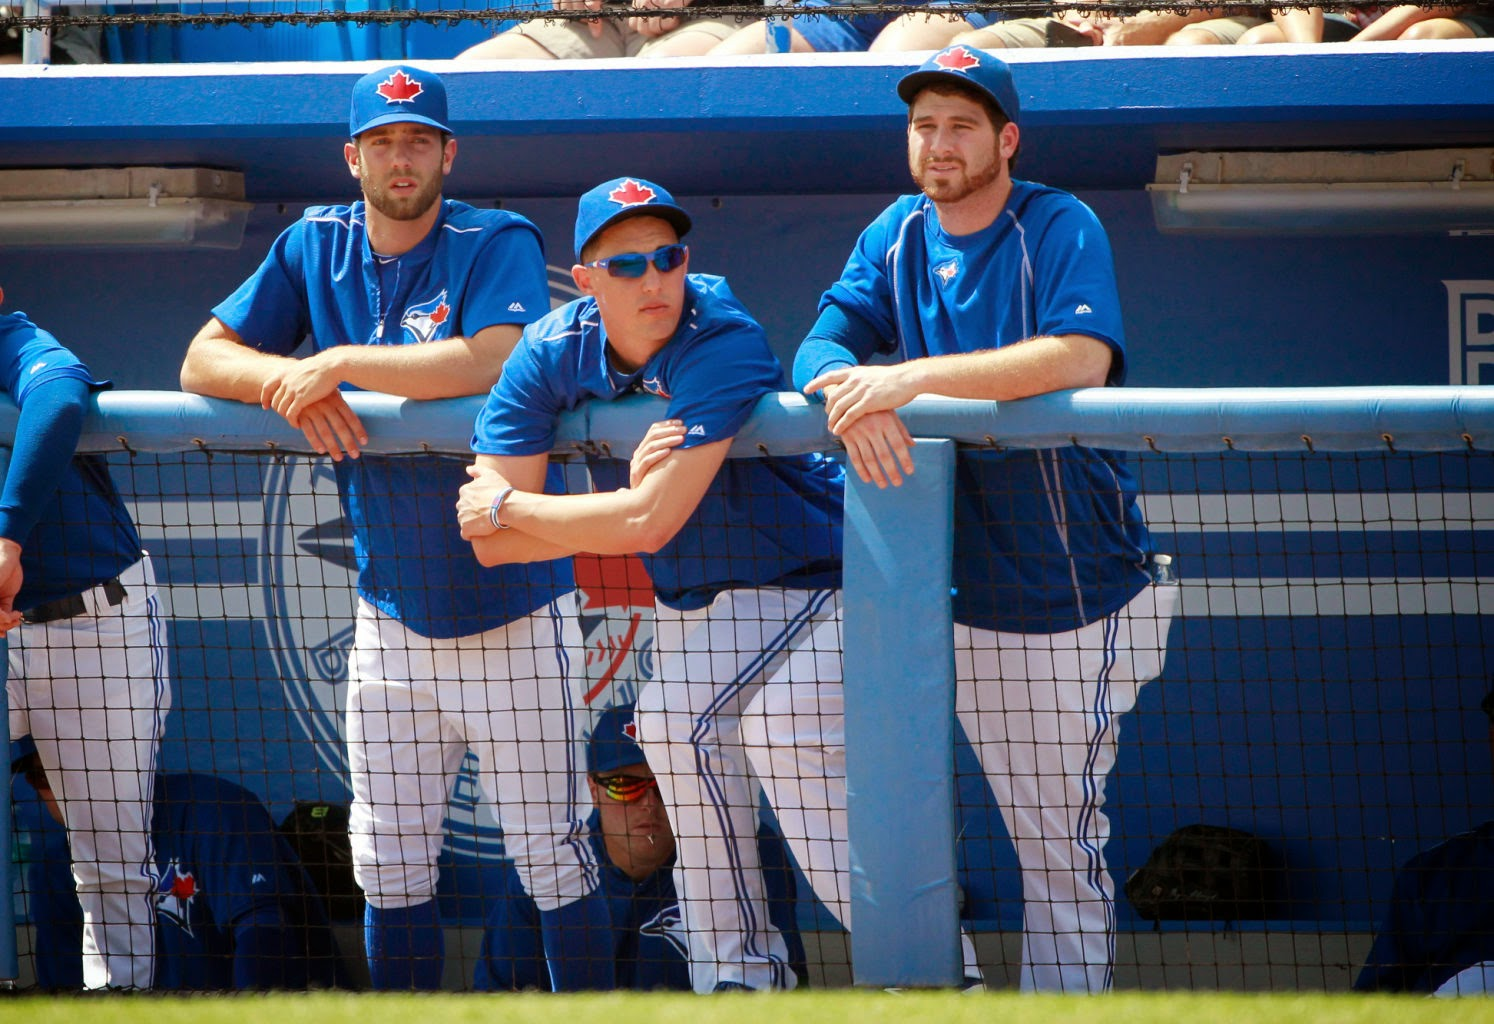 DO THE JAYS NEED A BETTER EFFORT FROM THEIR STAFF? OR CAN THEY HIT THEIR WAY TO THE TOP?  June 25, 2015